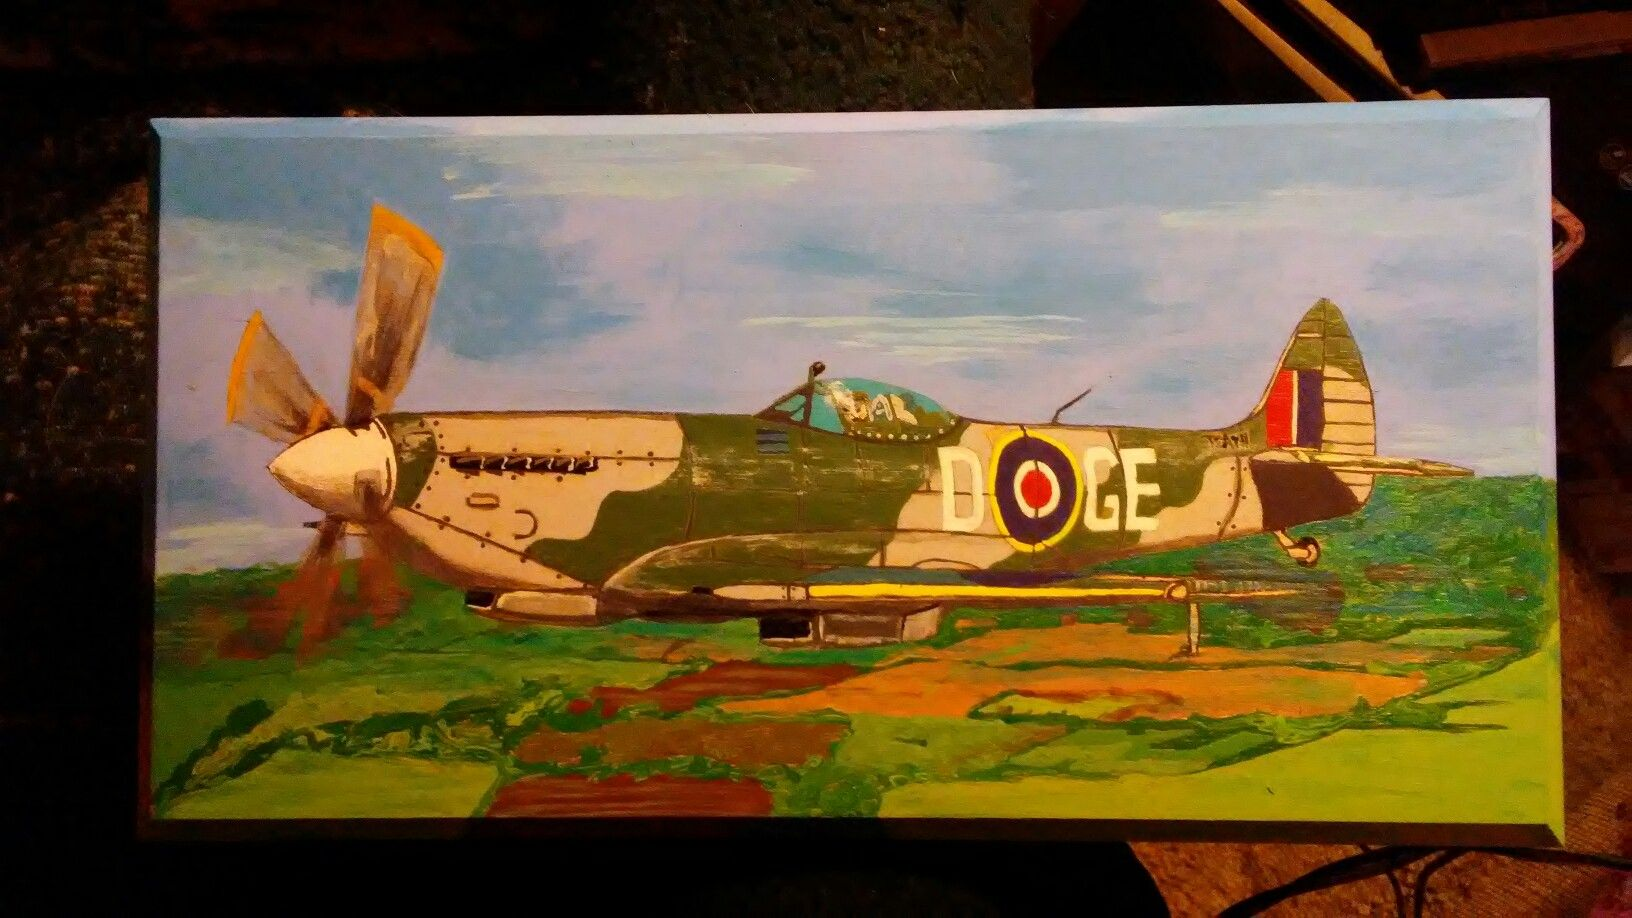 Spitfire painting by William kennedy